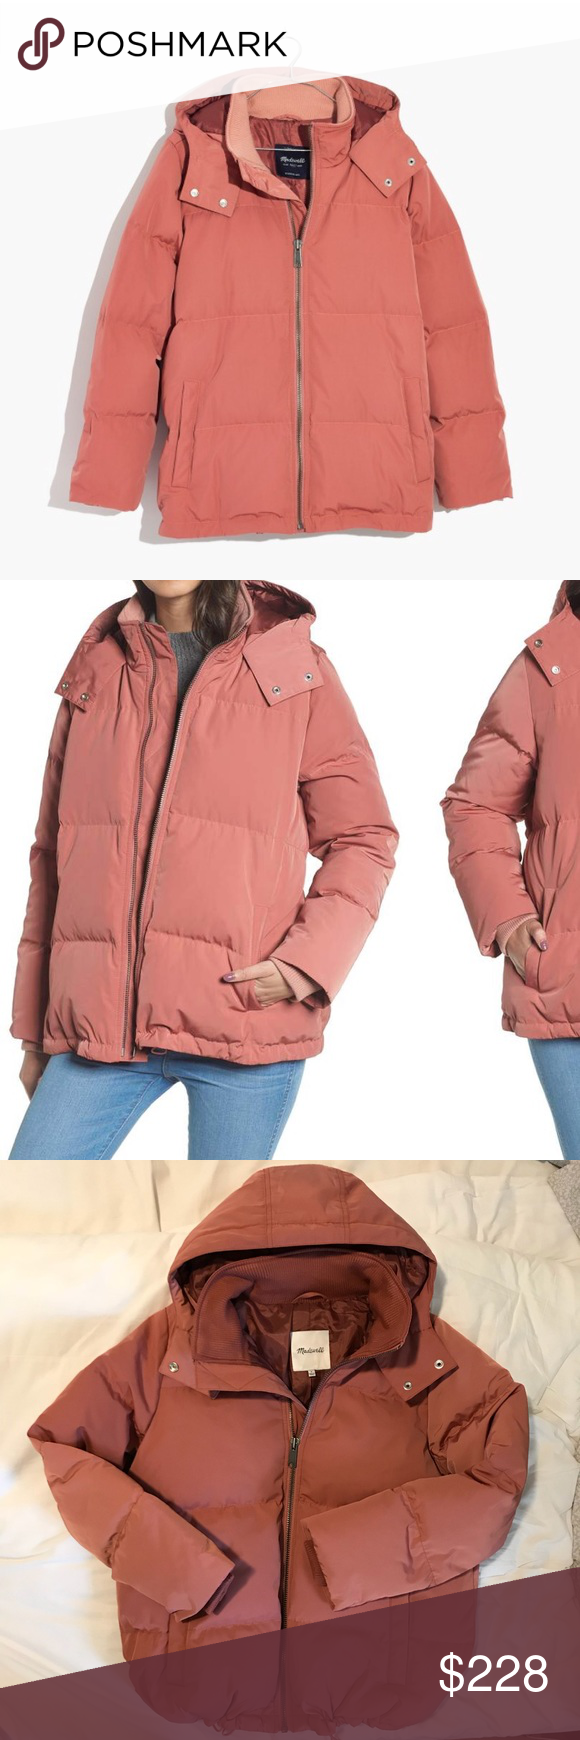 0a45f1a548a Madewell Quilted Down Puffer Parka Jacket Small Madewell Quilted ...